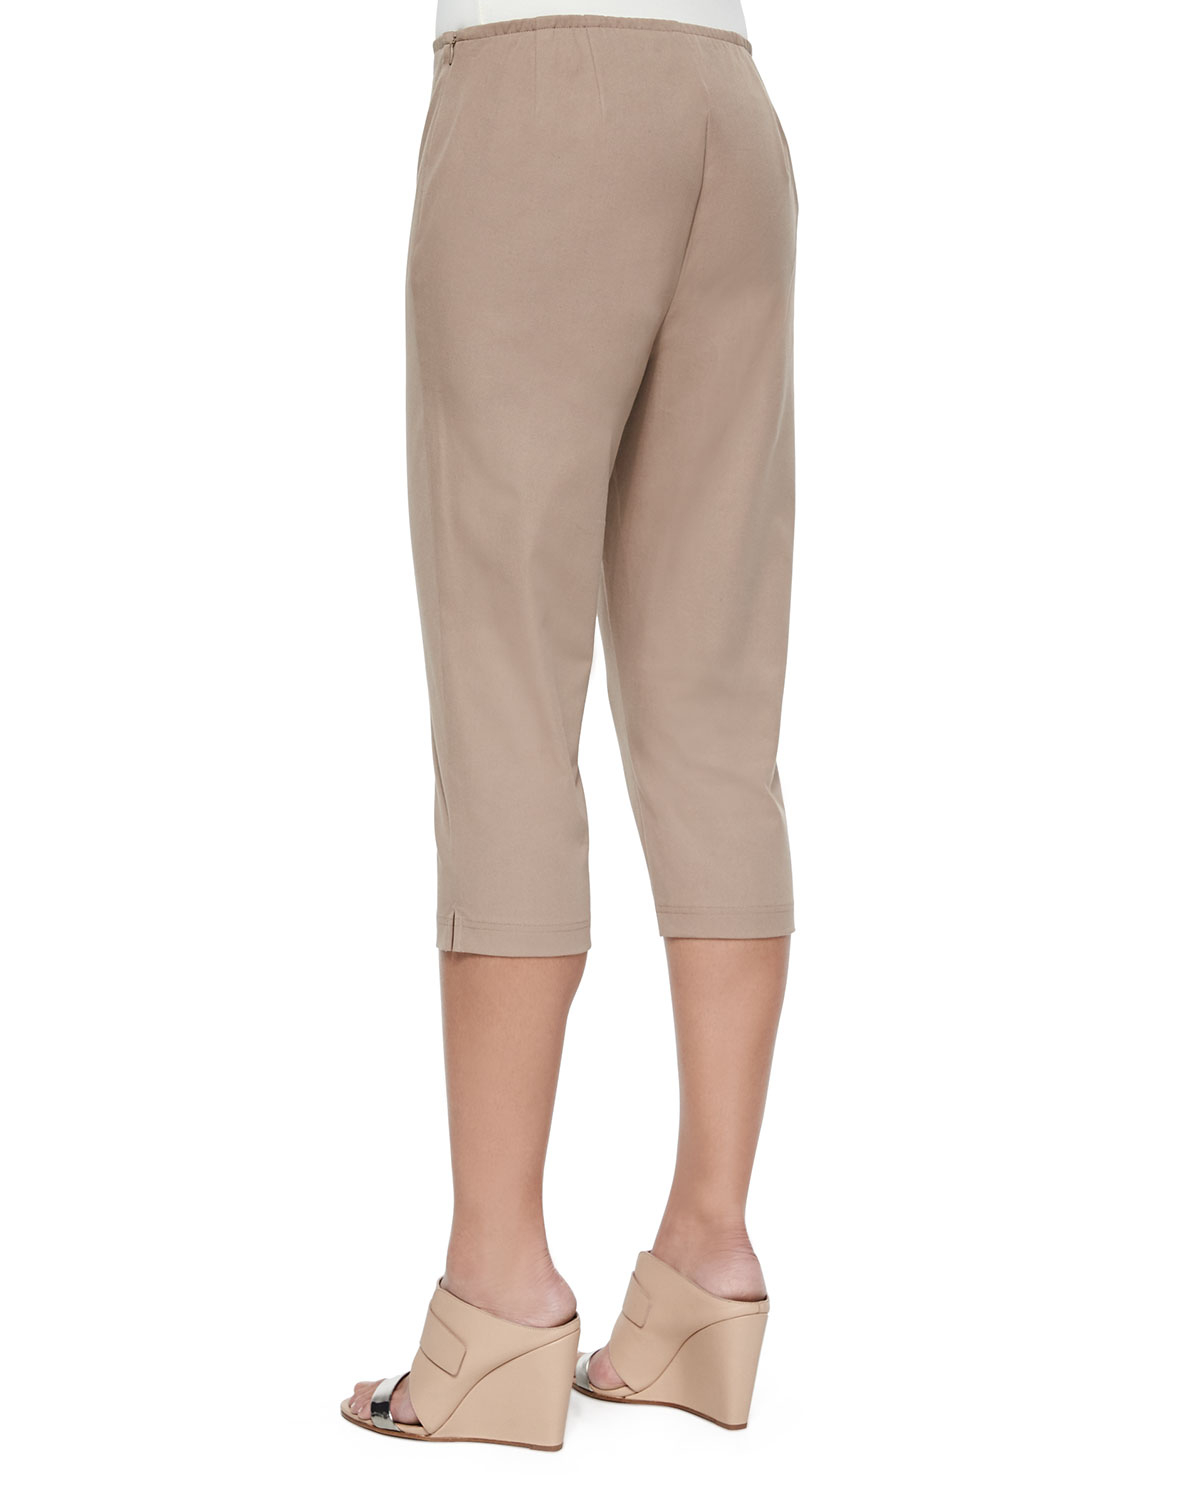 Eileen fisher Organic Cotton Slim Capri Pants in Natural | Lyst